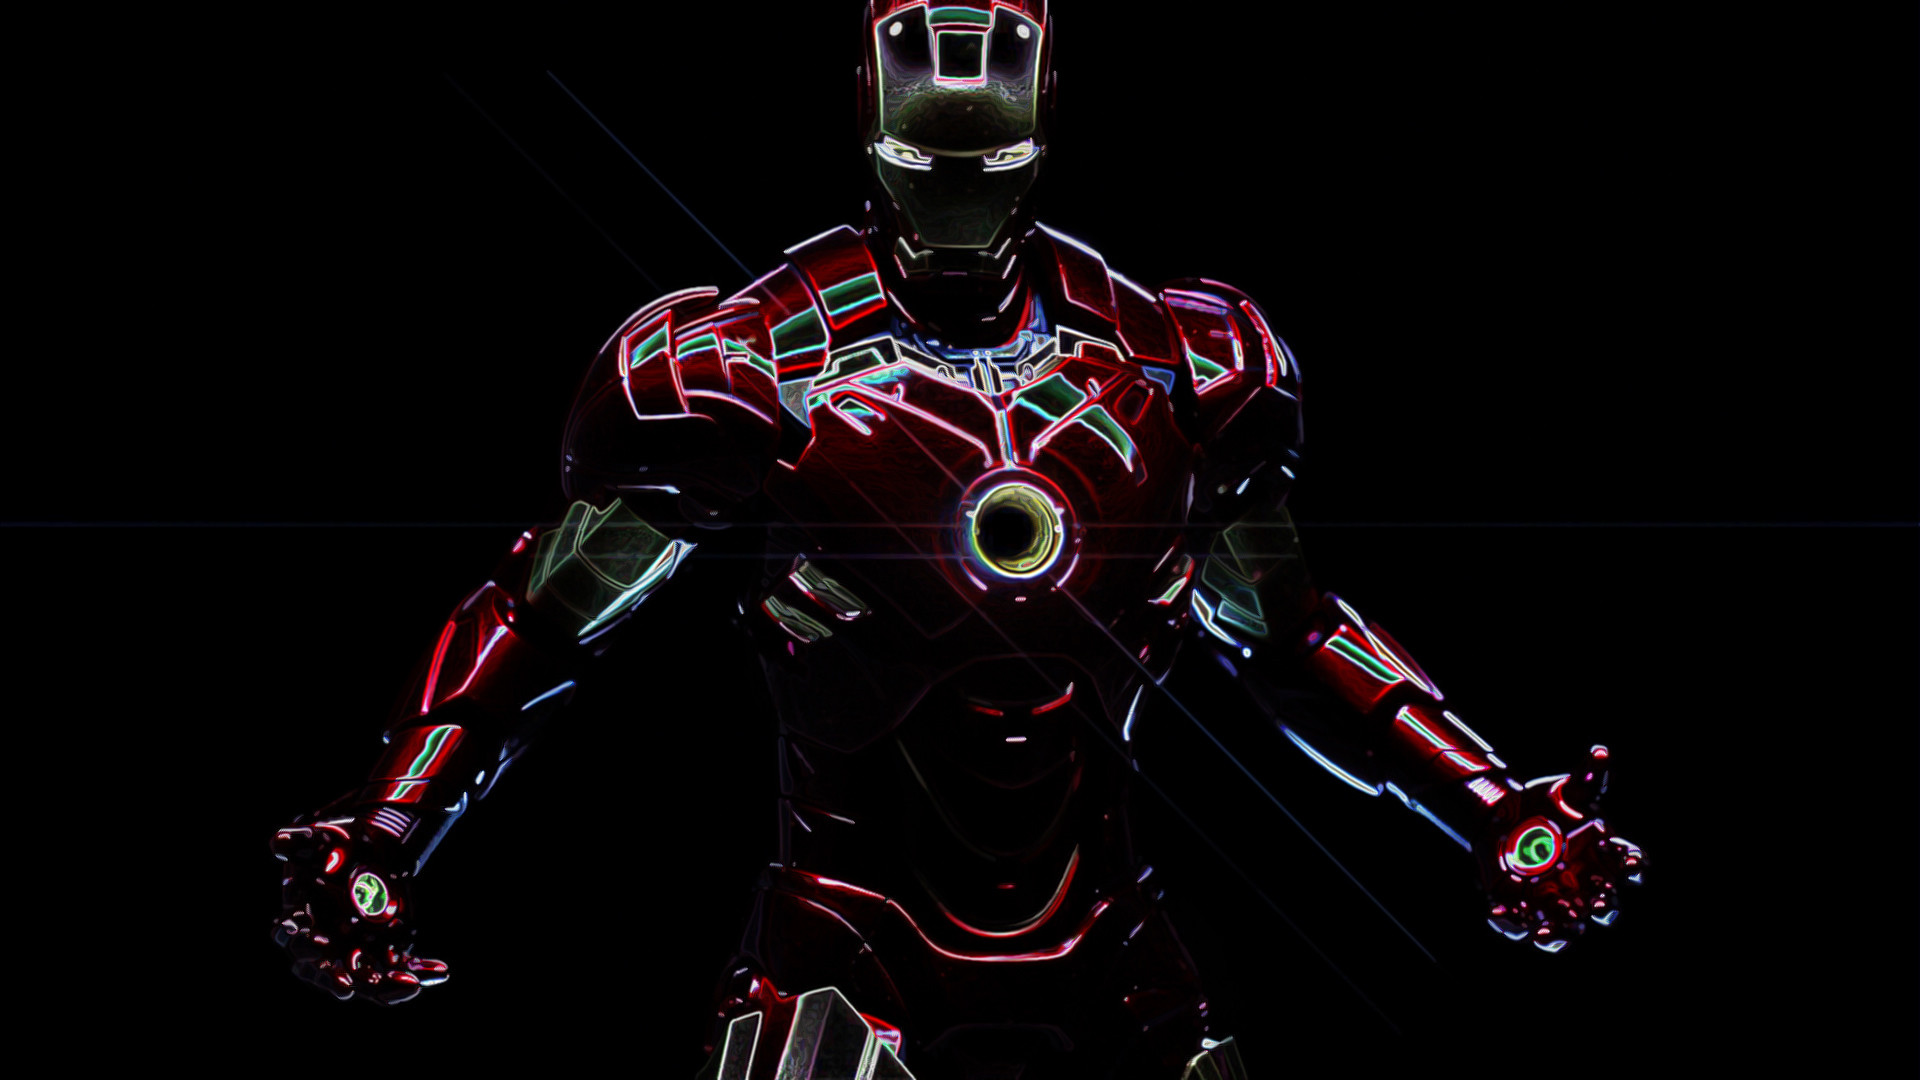 1920x1080 Iron Man Suit Diagnostic HD Wide Wallpaper For Widescreen Download